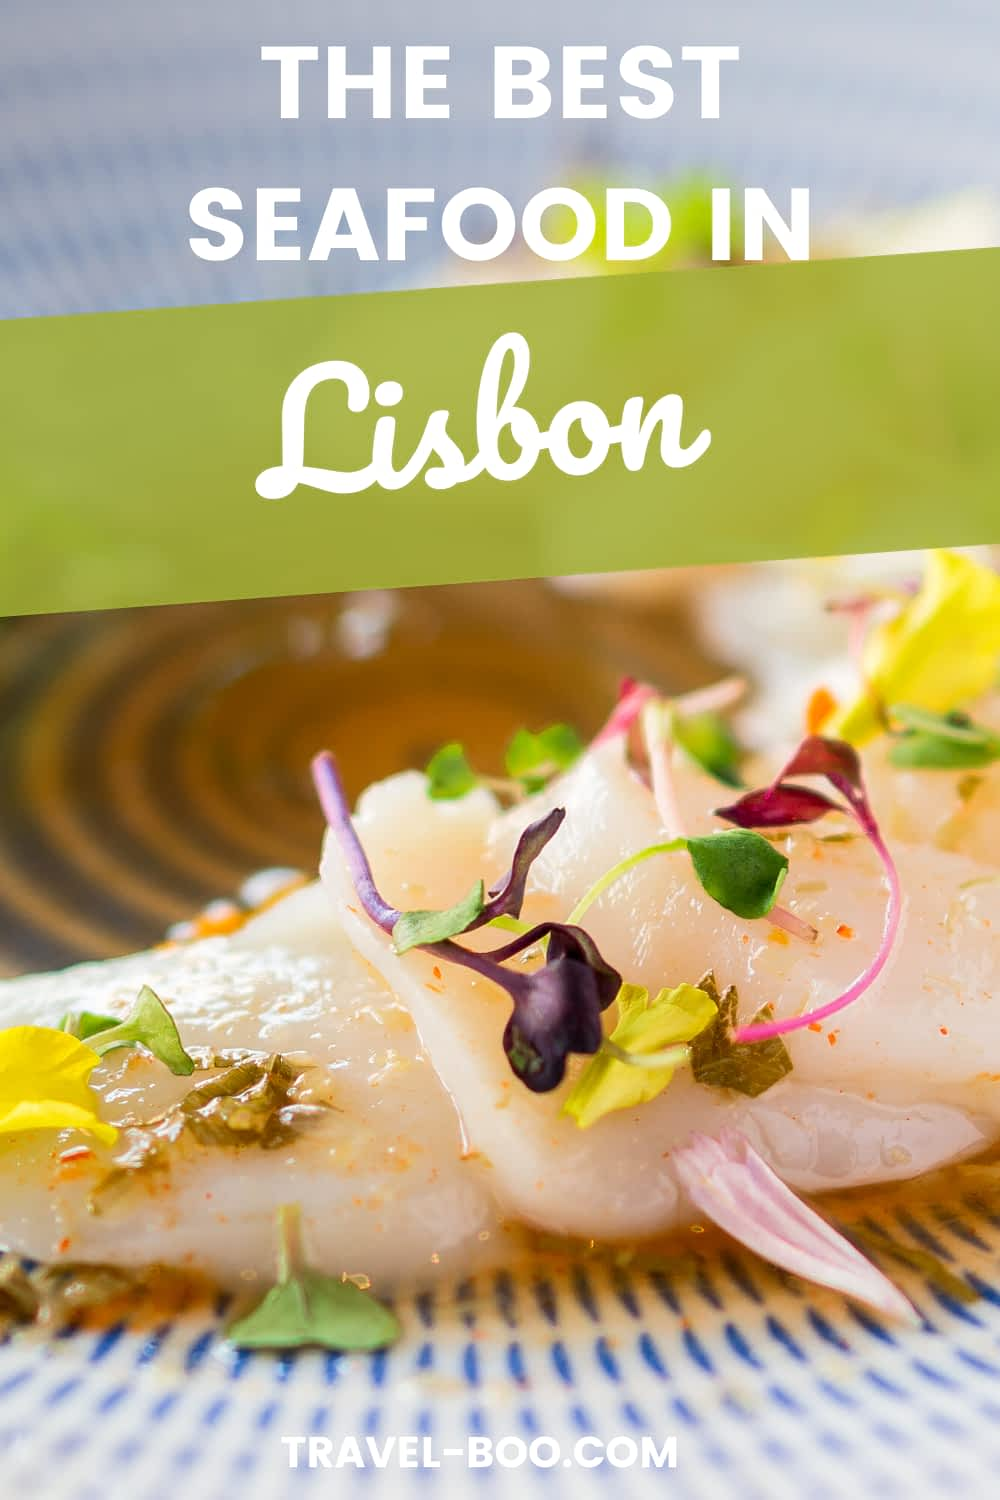 Looking for the best spots to enjoy Portuguese seafood dishes in Lisbon? Then don't miss our guide on the best seafood restaurants in Lisbon! Lisbon Travel, Lisbon Travel Portugal, Lisbon Portugal, Lisbon Travel Things to do, Lisbon Travel Tips, Lisbon Travel Guide, Portugal Travel, Portugal Travel Guide, Portugal Travel Lisbon. #lisbontravel #lisbontravelguide #portugaltravel